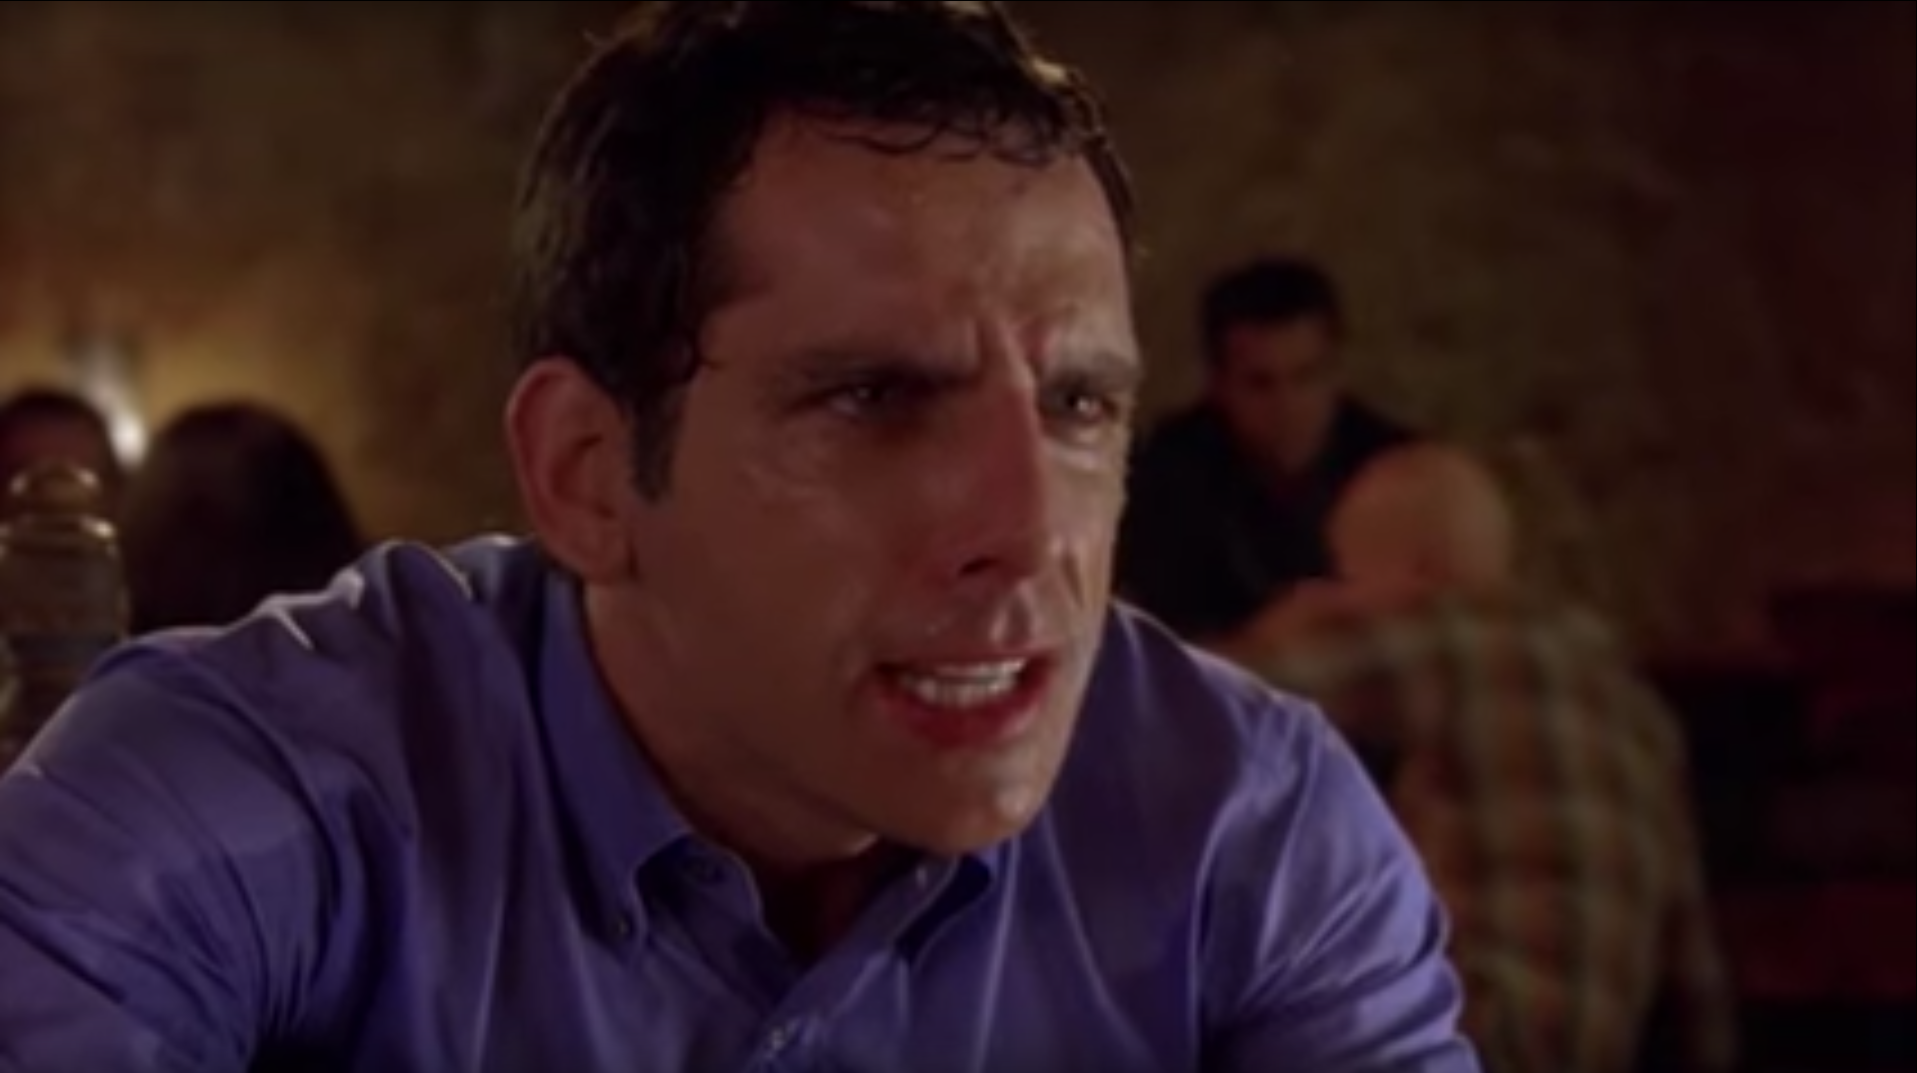 In Along Came Polly, a first date goes awry when spicy food does not sit well